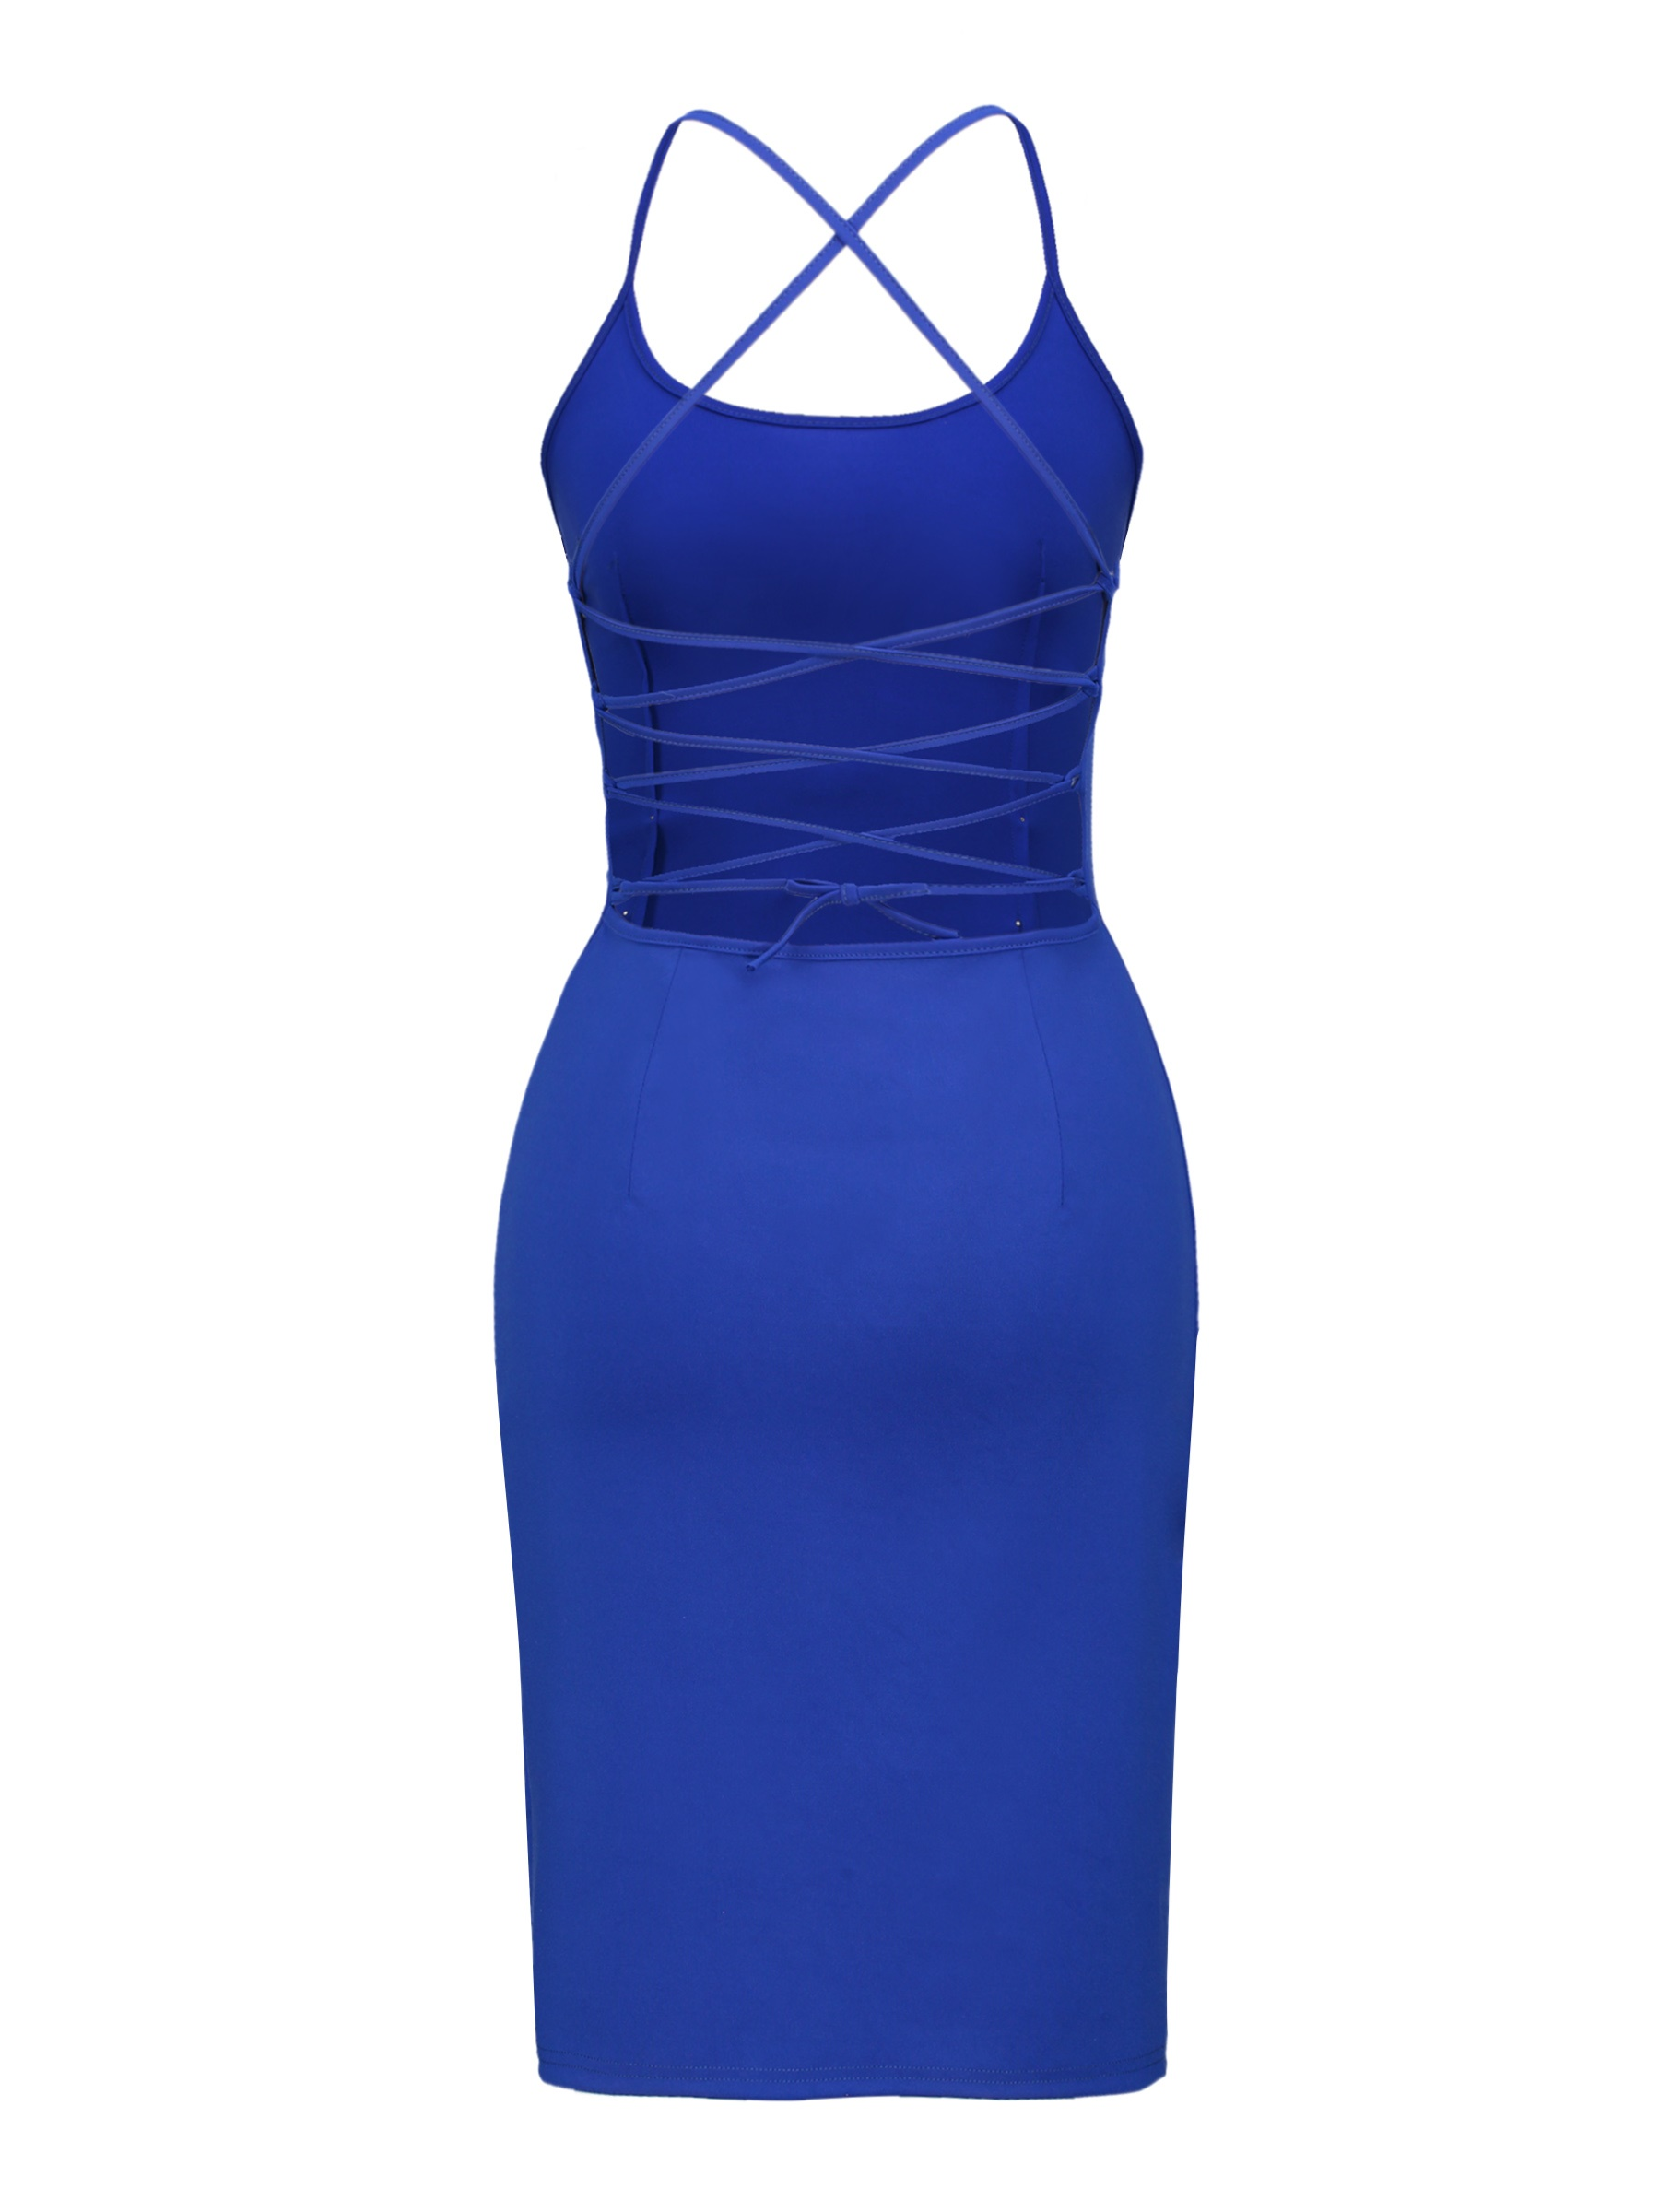 Ericdress Hollow Backless Bead Spaghetti Strap Bodycon Dress